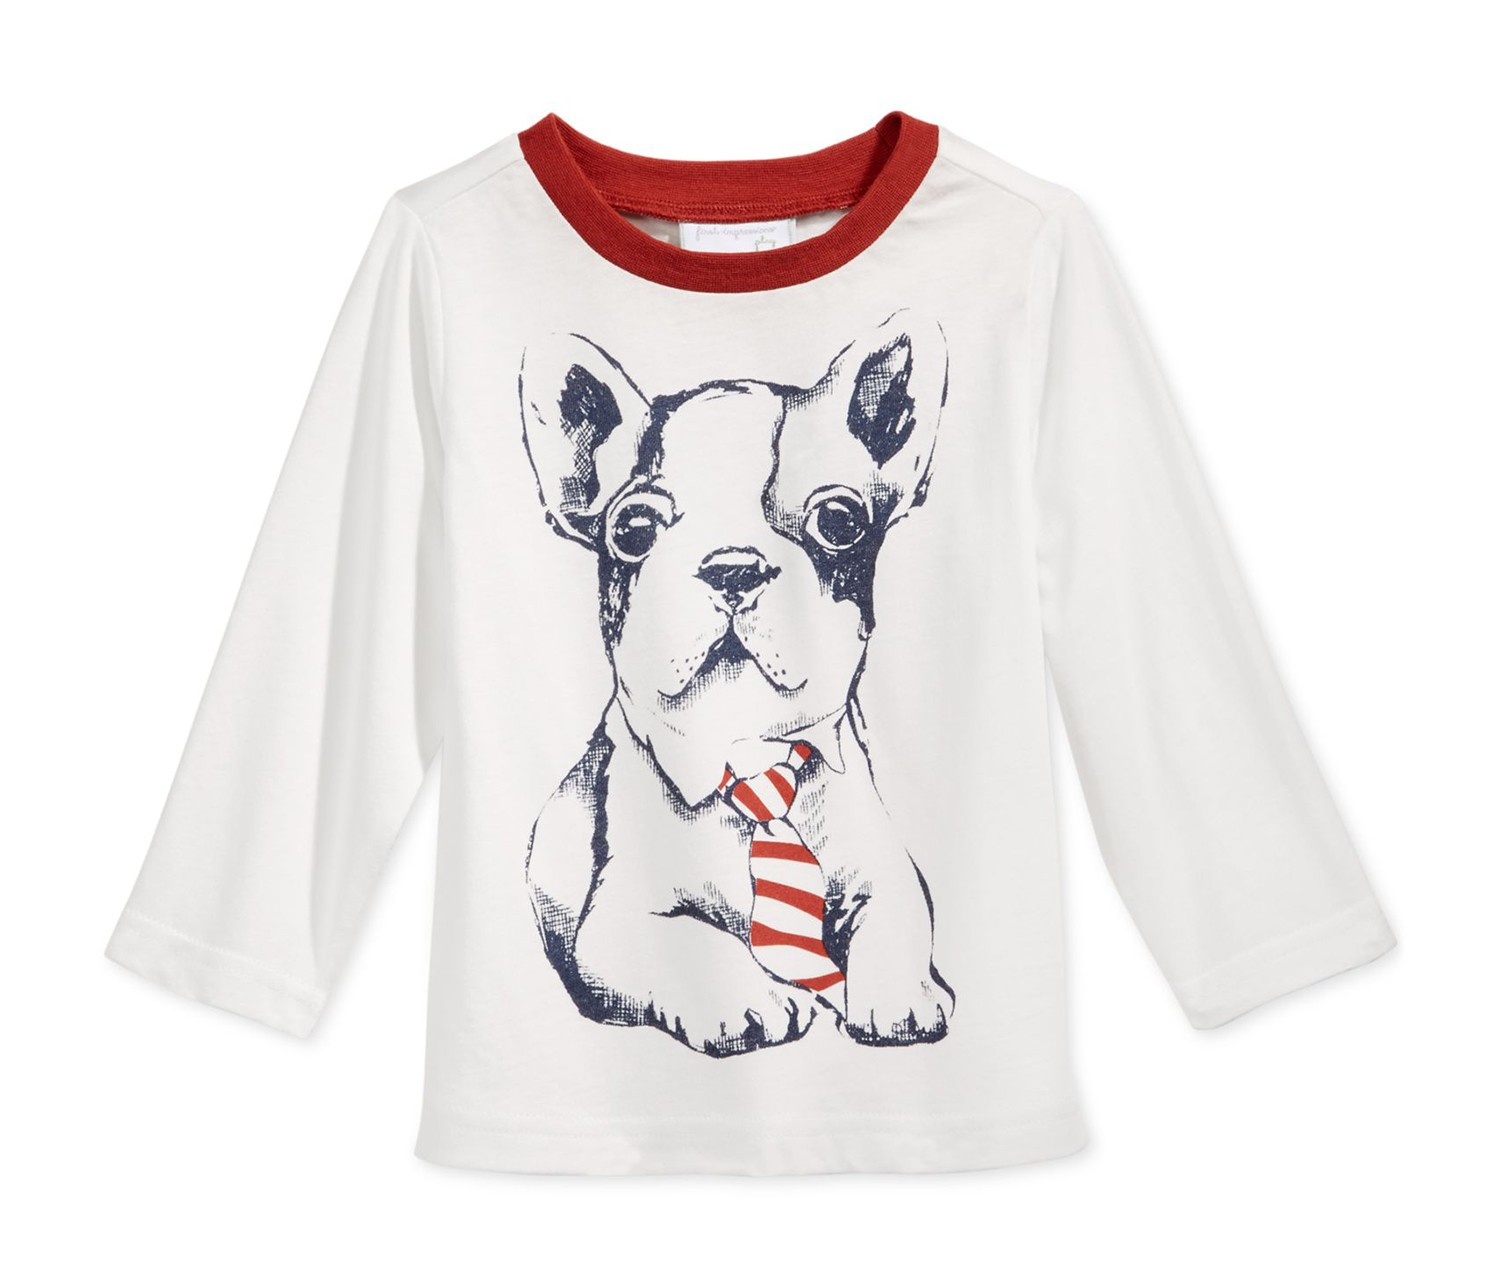 316c64cb ... First Impressions Baby Boys Long-Sleeve Graphic T-Shirt, Angel White.  Handbags Collection. Suits & Blazers. Kids Fashion. 4/4979-IT.jpg